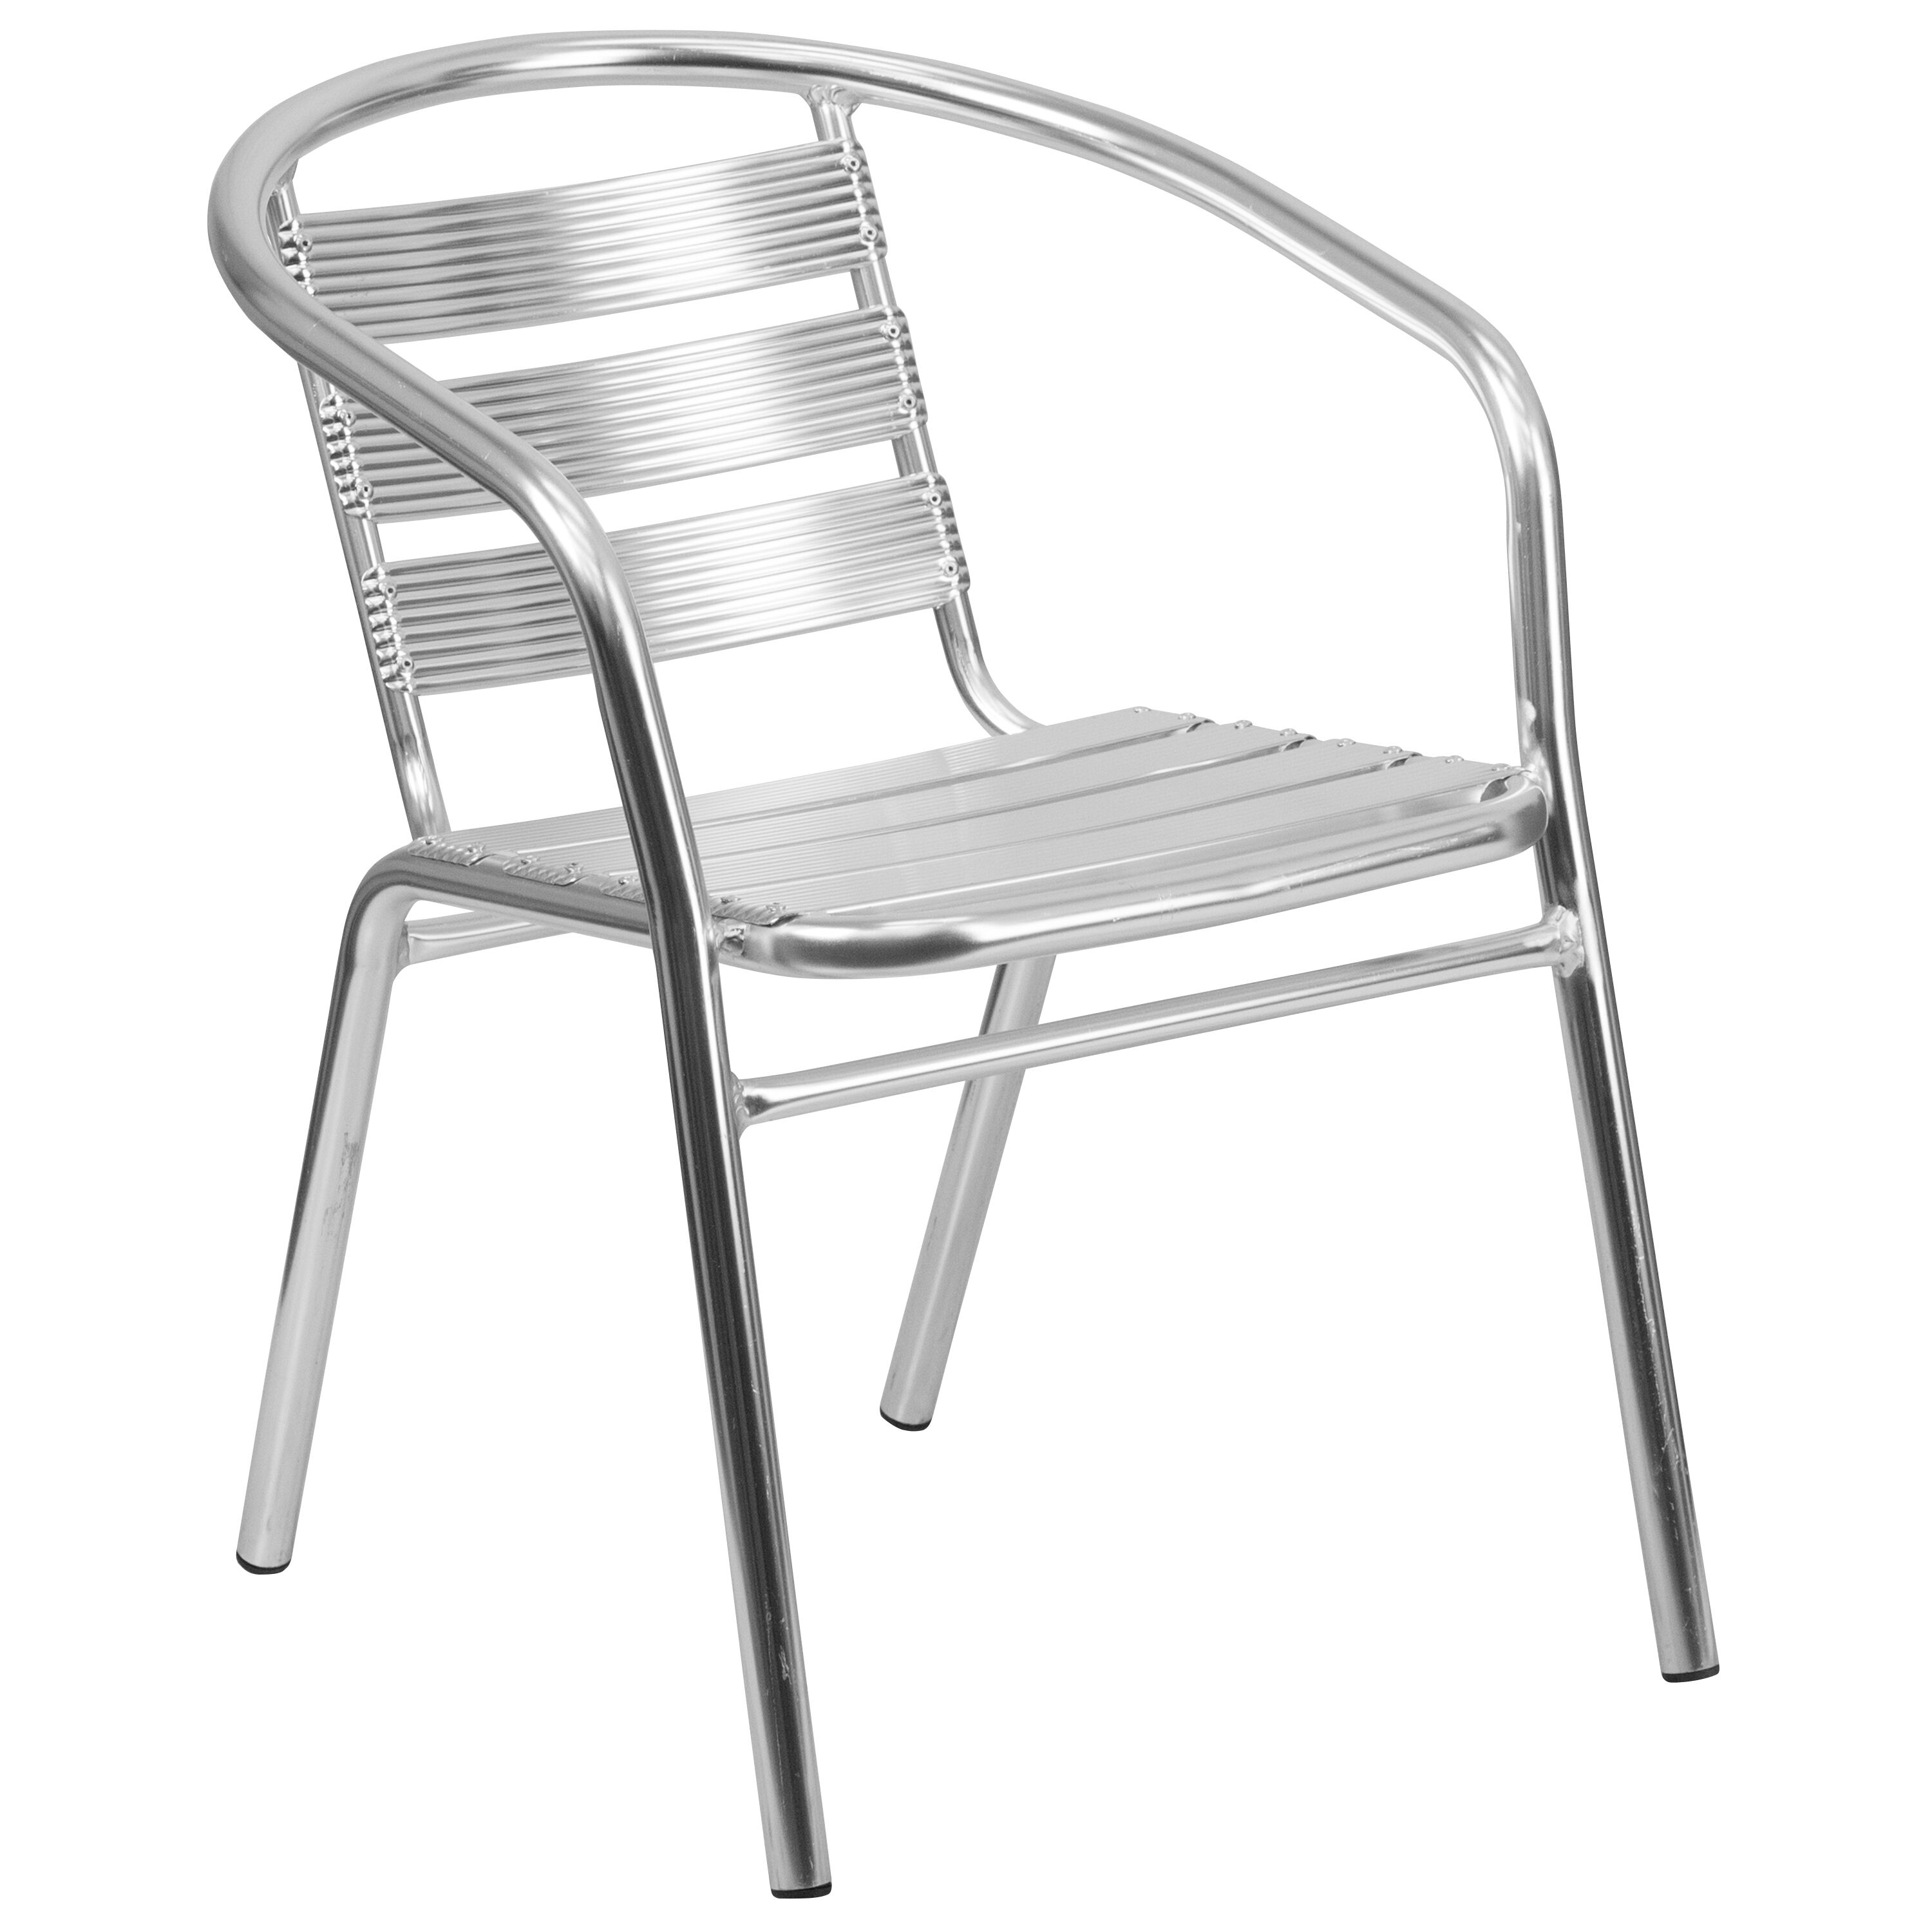 outdoor aluminum chairs chair covers wedding bows restaurantfurniture4less heavy duty commercial indoor restaurant stack with triple slat back